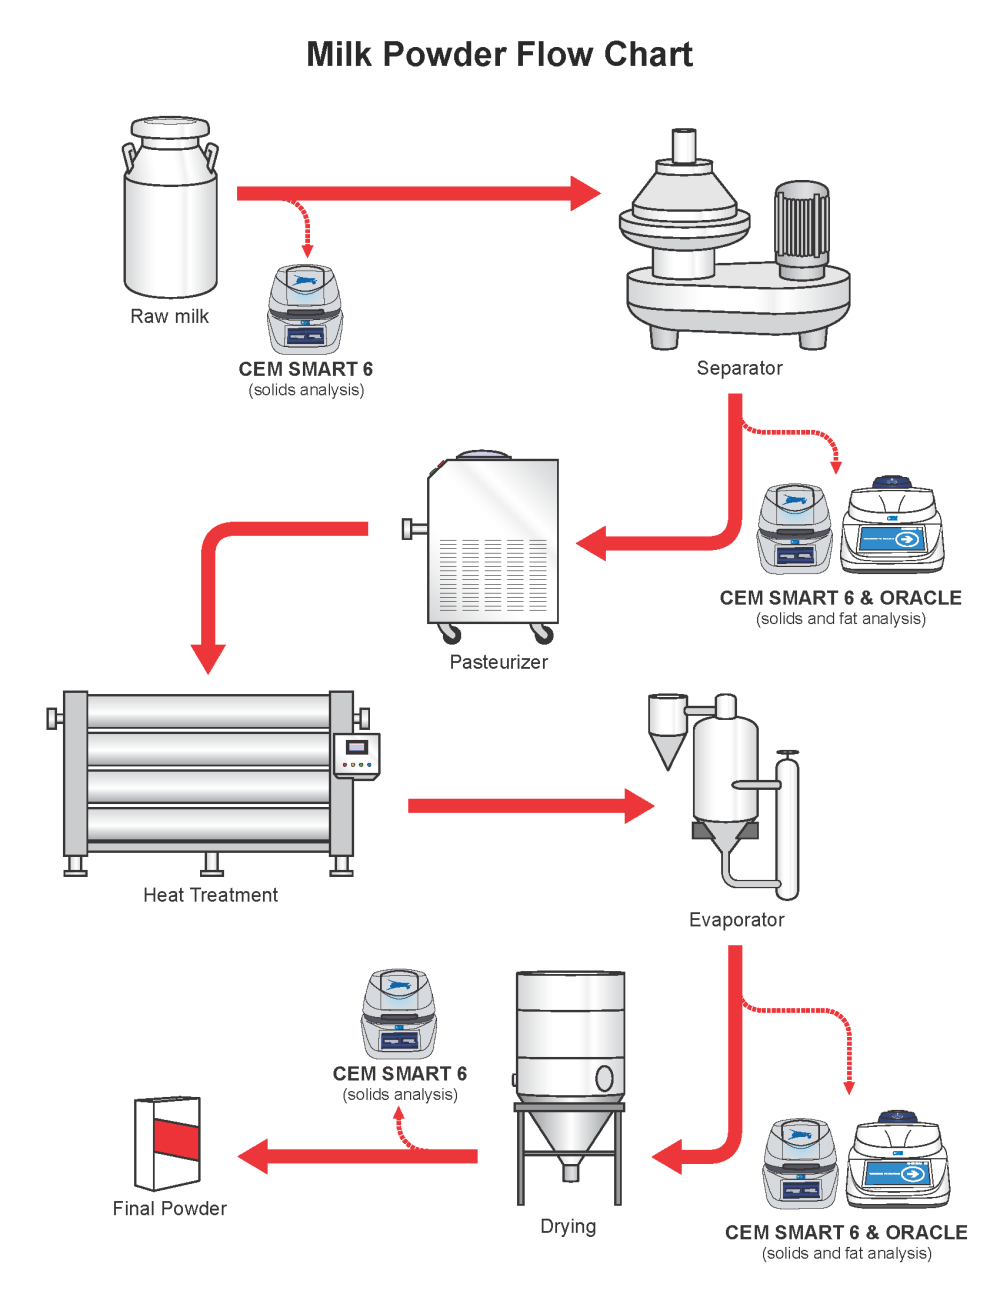 medium resolution of the milk powder flow chart gives precise details on the production process of milk powder as well as an explanation of where cem process products can be